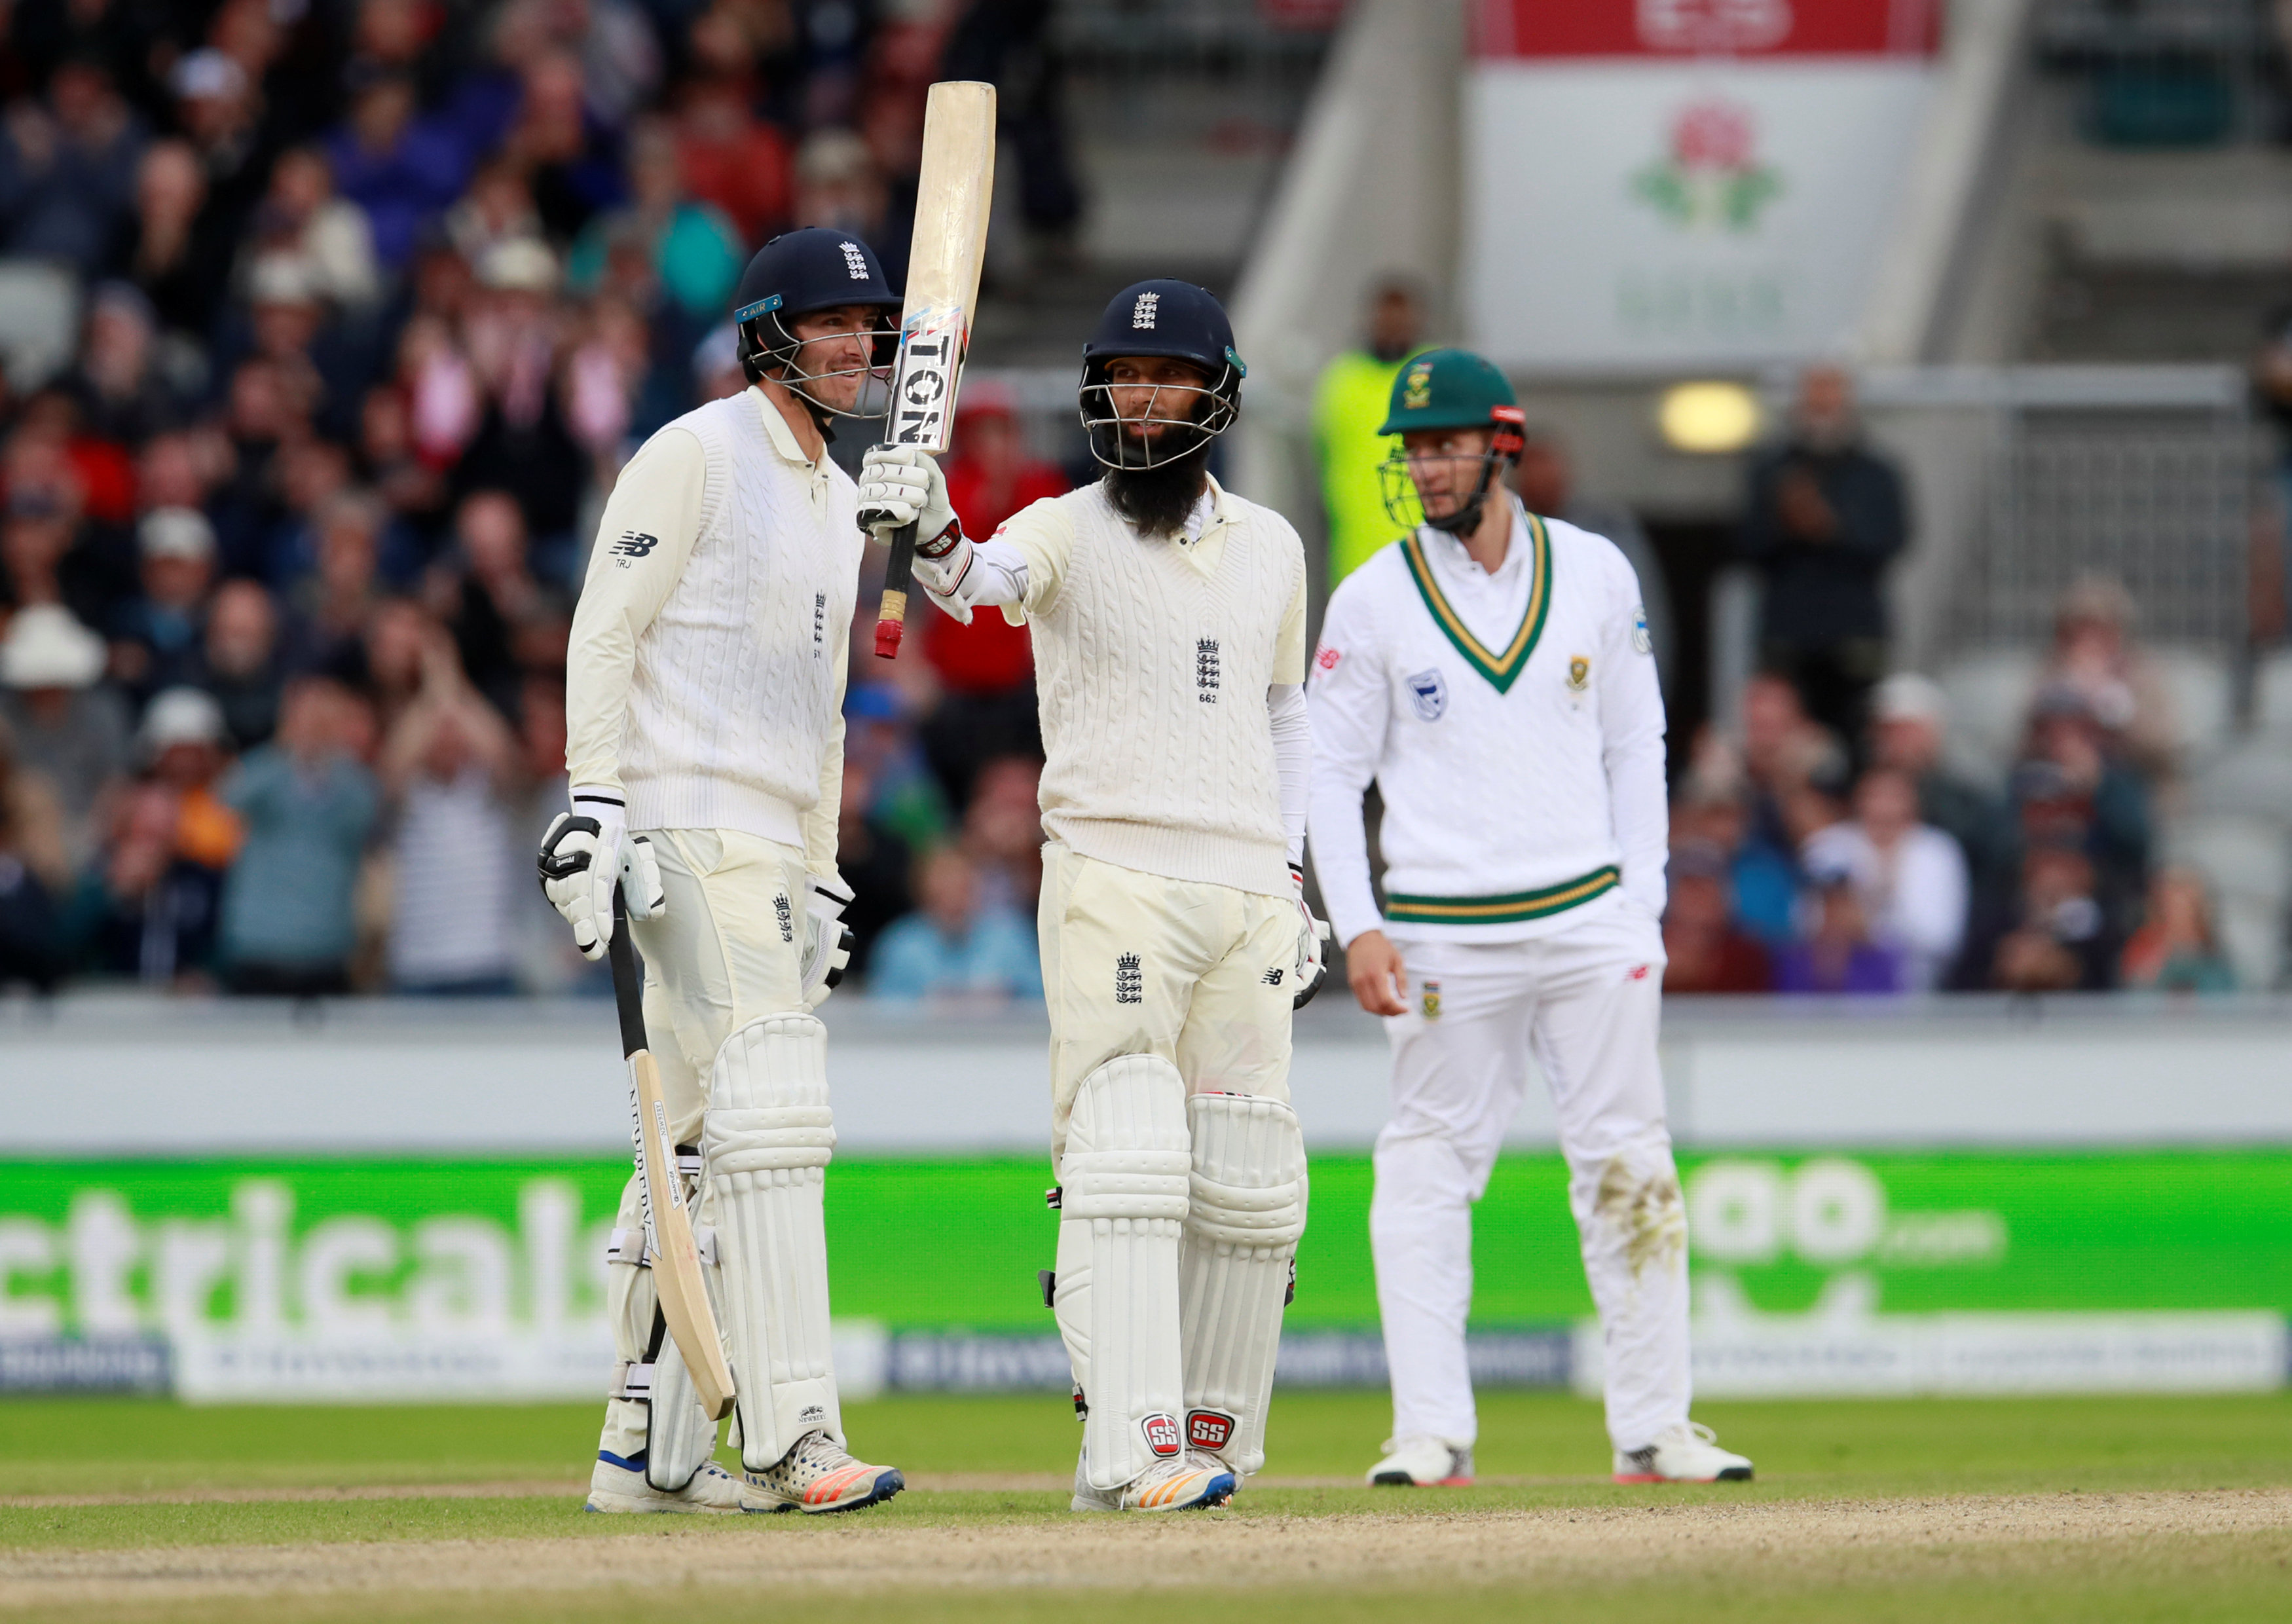 Cricket: Moeen Ali keeps England in control of fourth Test against South Africa